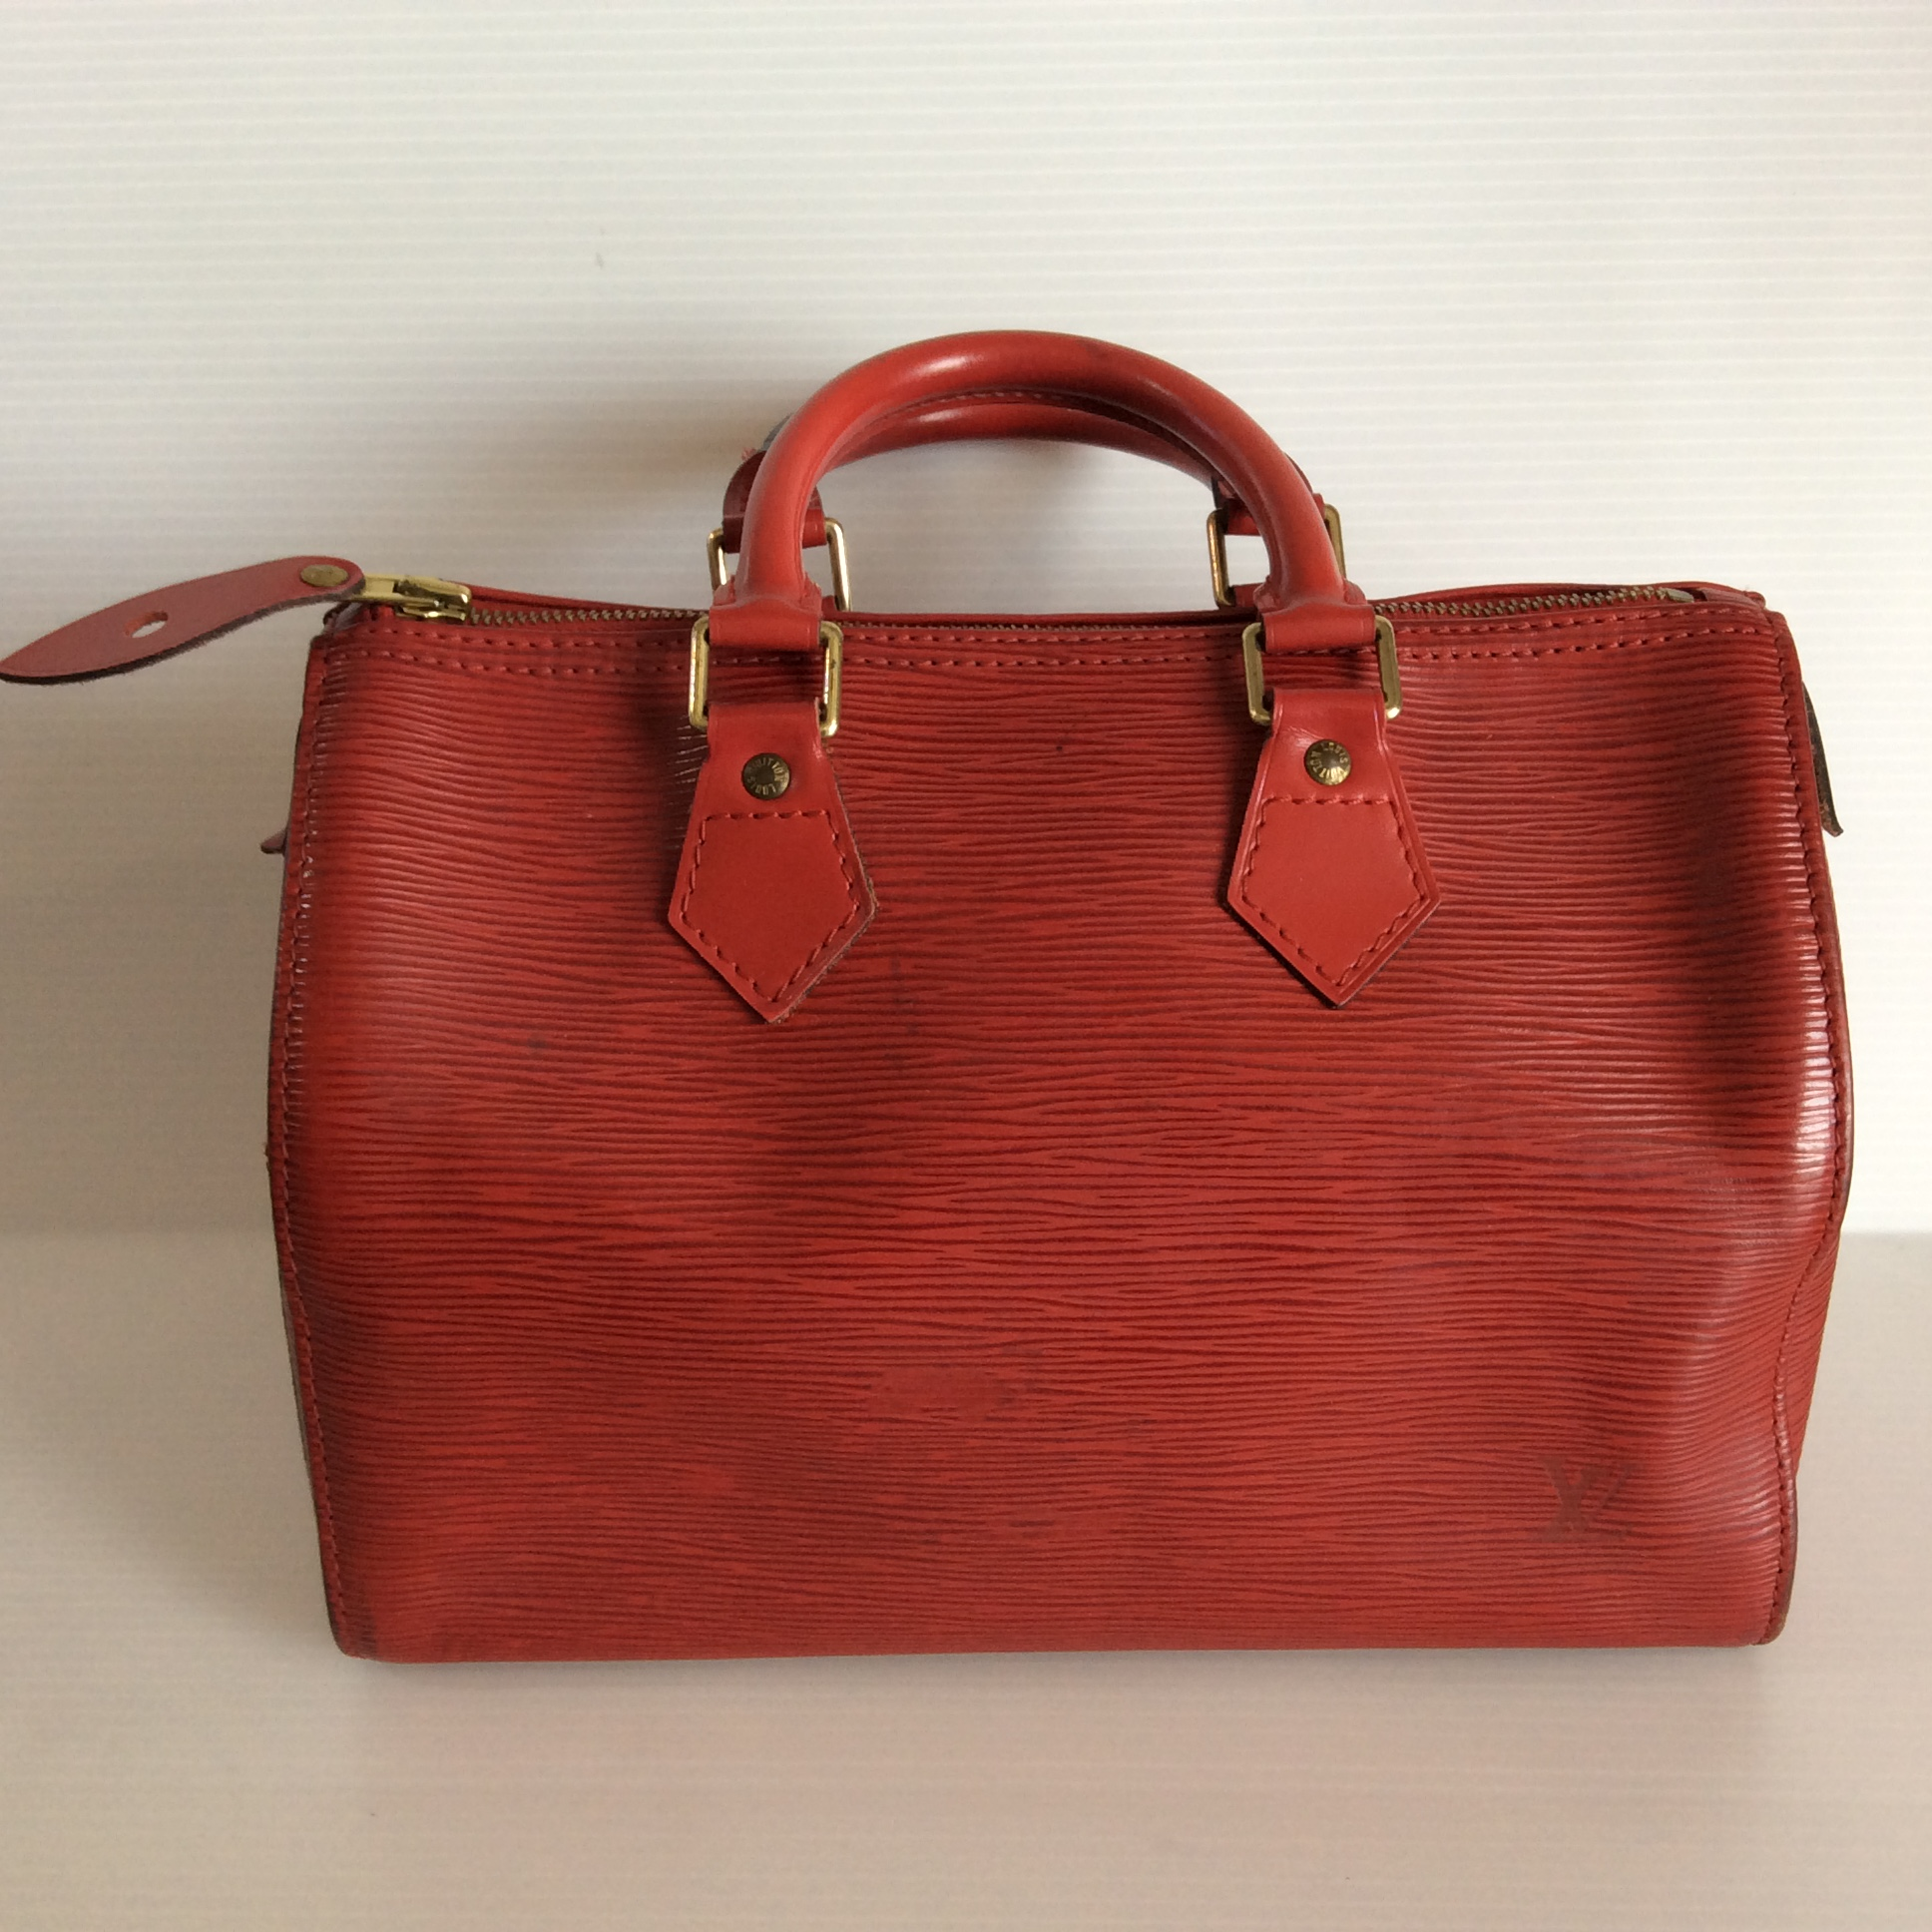 [SOLDOUT]Used : กระเป๋า Louisvuitton Speedy 25 Epi Red